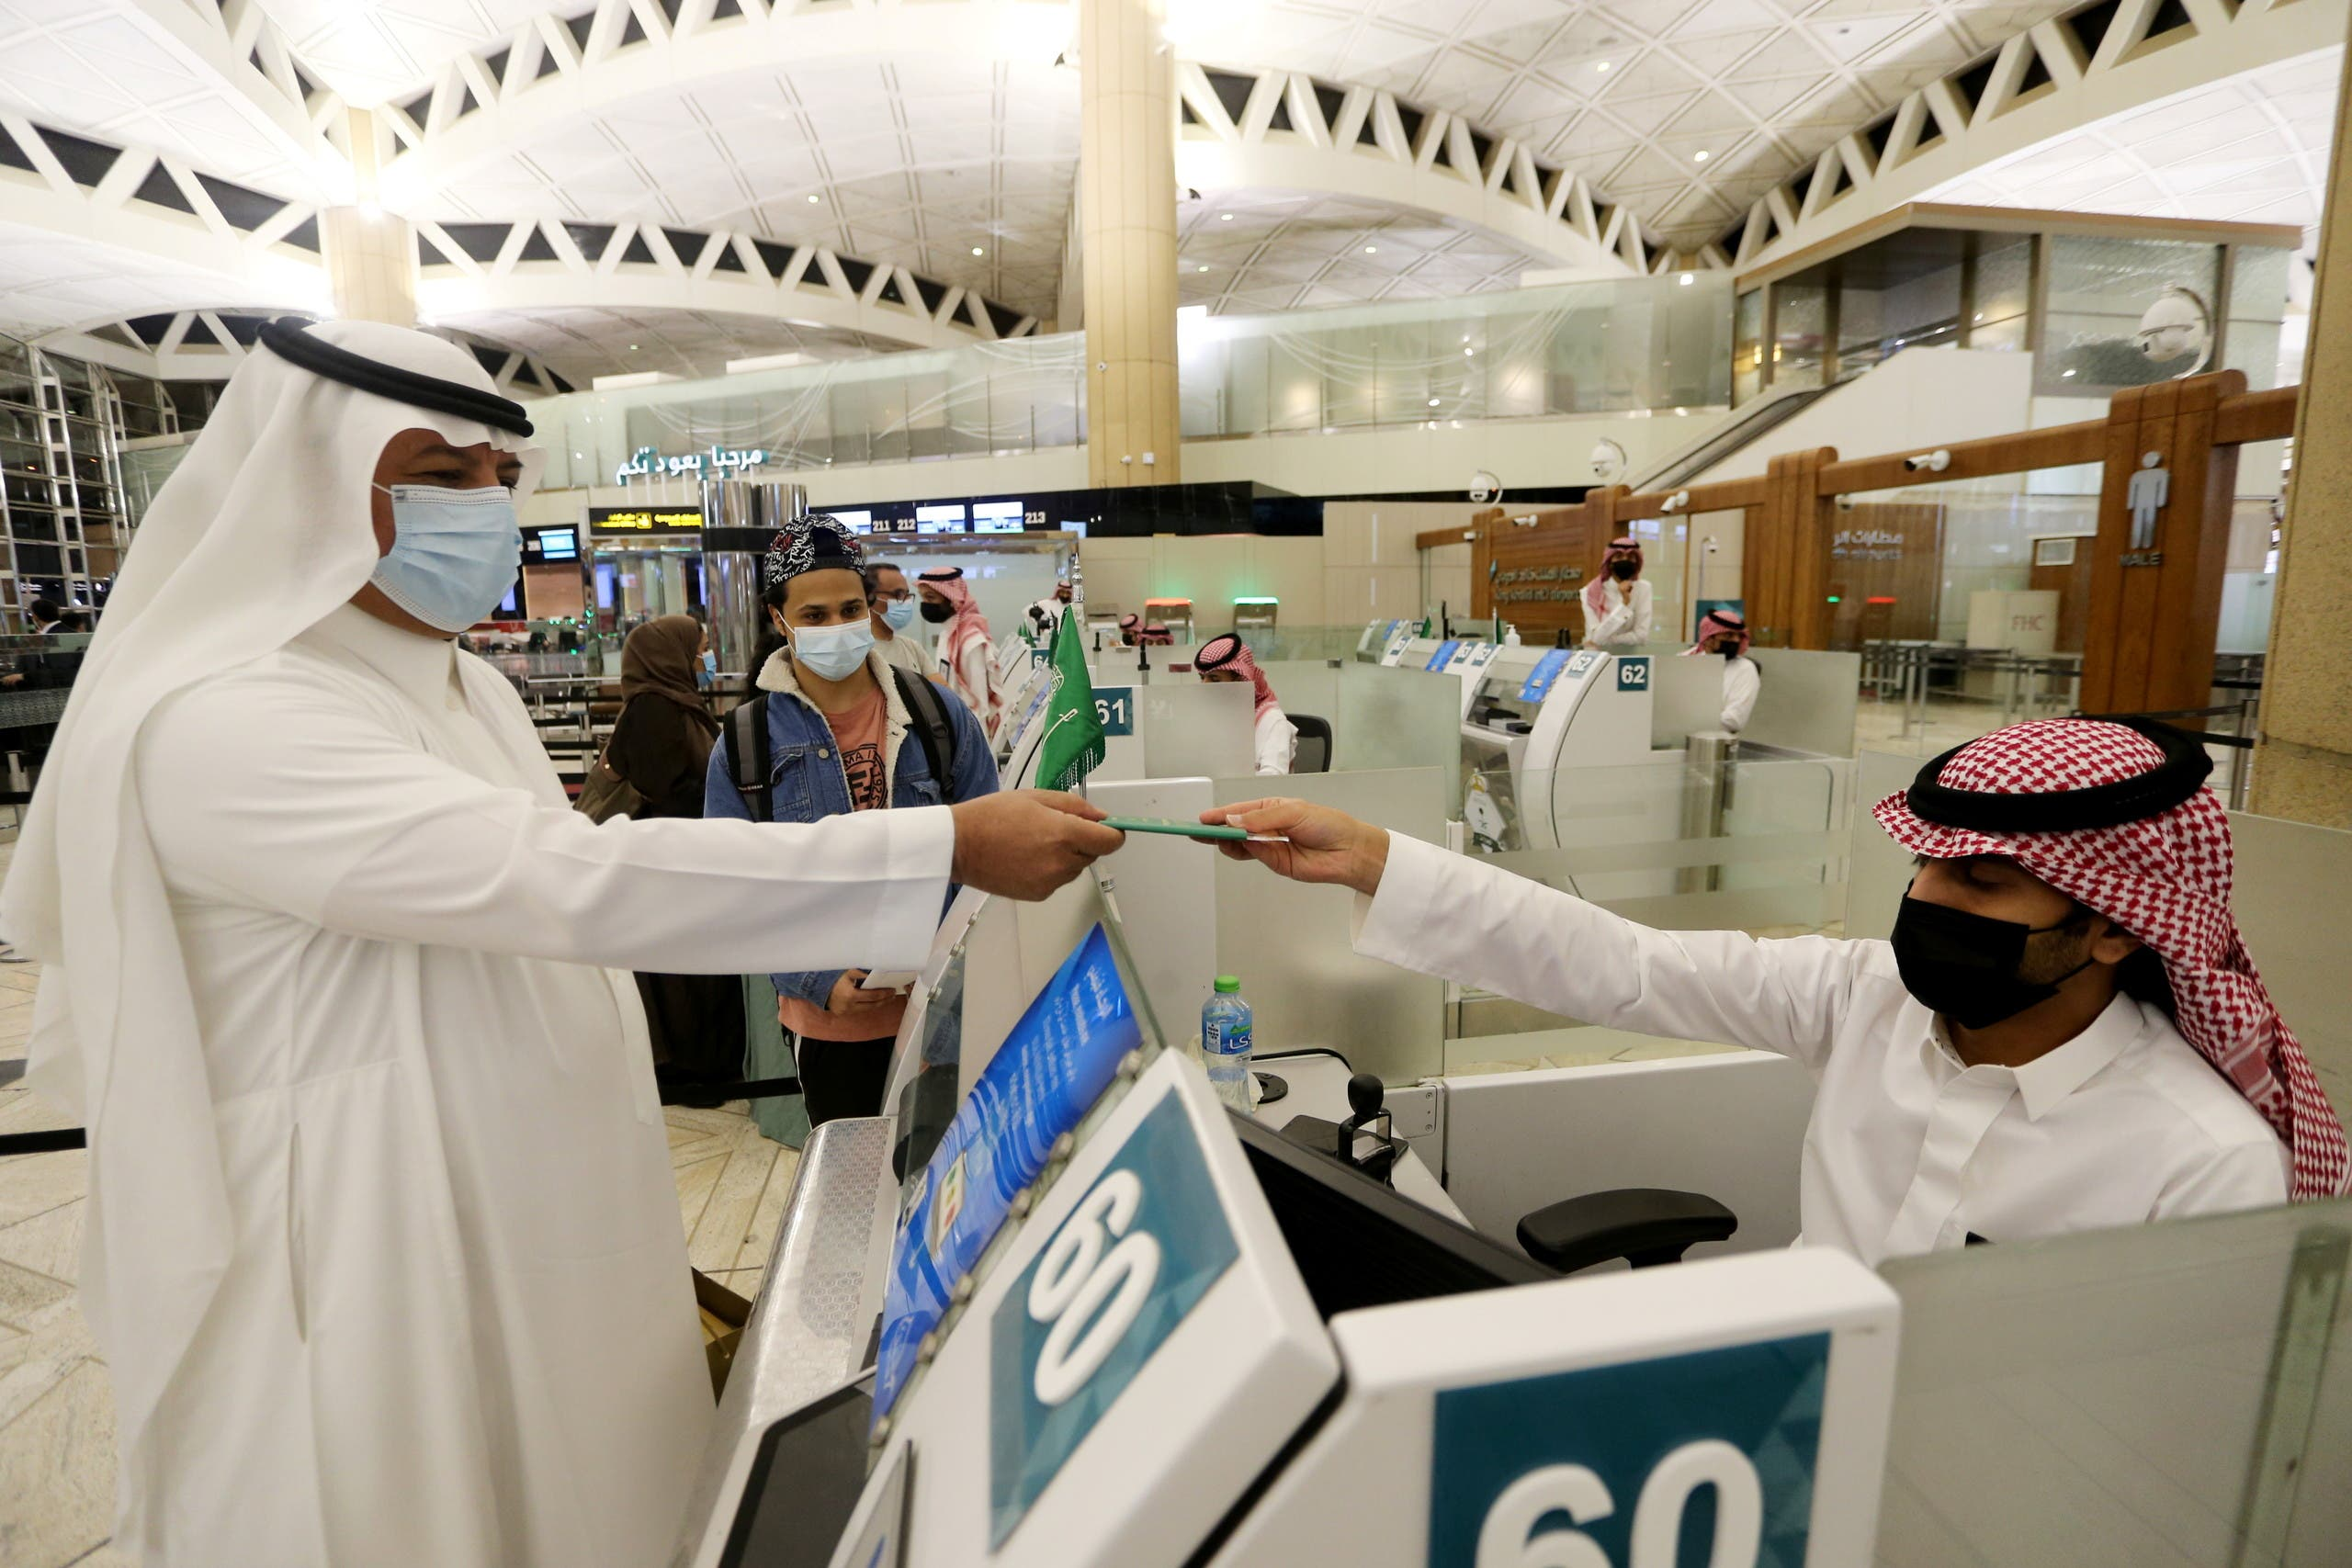 A Saudi man wearing a face mask gets his passport from a Saudi Immigration officer, at the King Khalid International Airport, after Saudi authorities lifted the travel ban on its citizens after fourteen months due to coronavirus disease (COVID-19) restrictions, in Riyadh, Saudi Arabia, May 16, 2021. (Reuters)